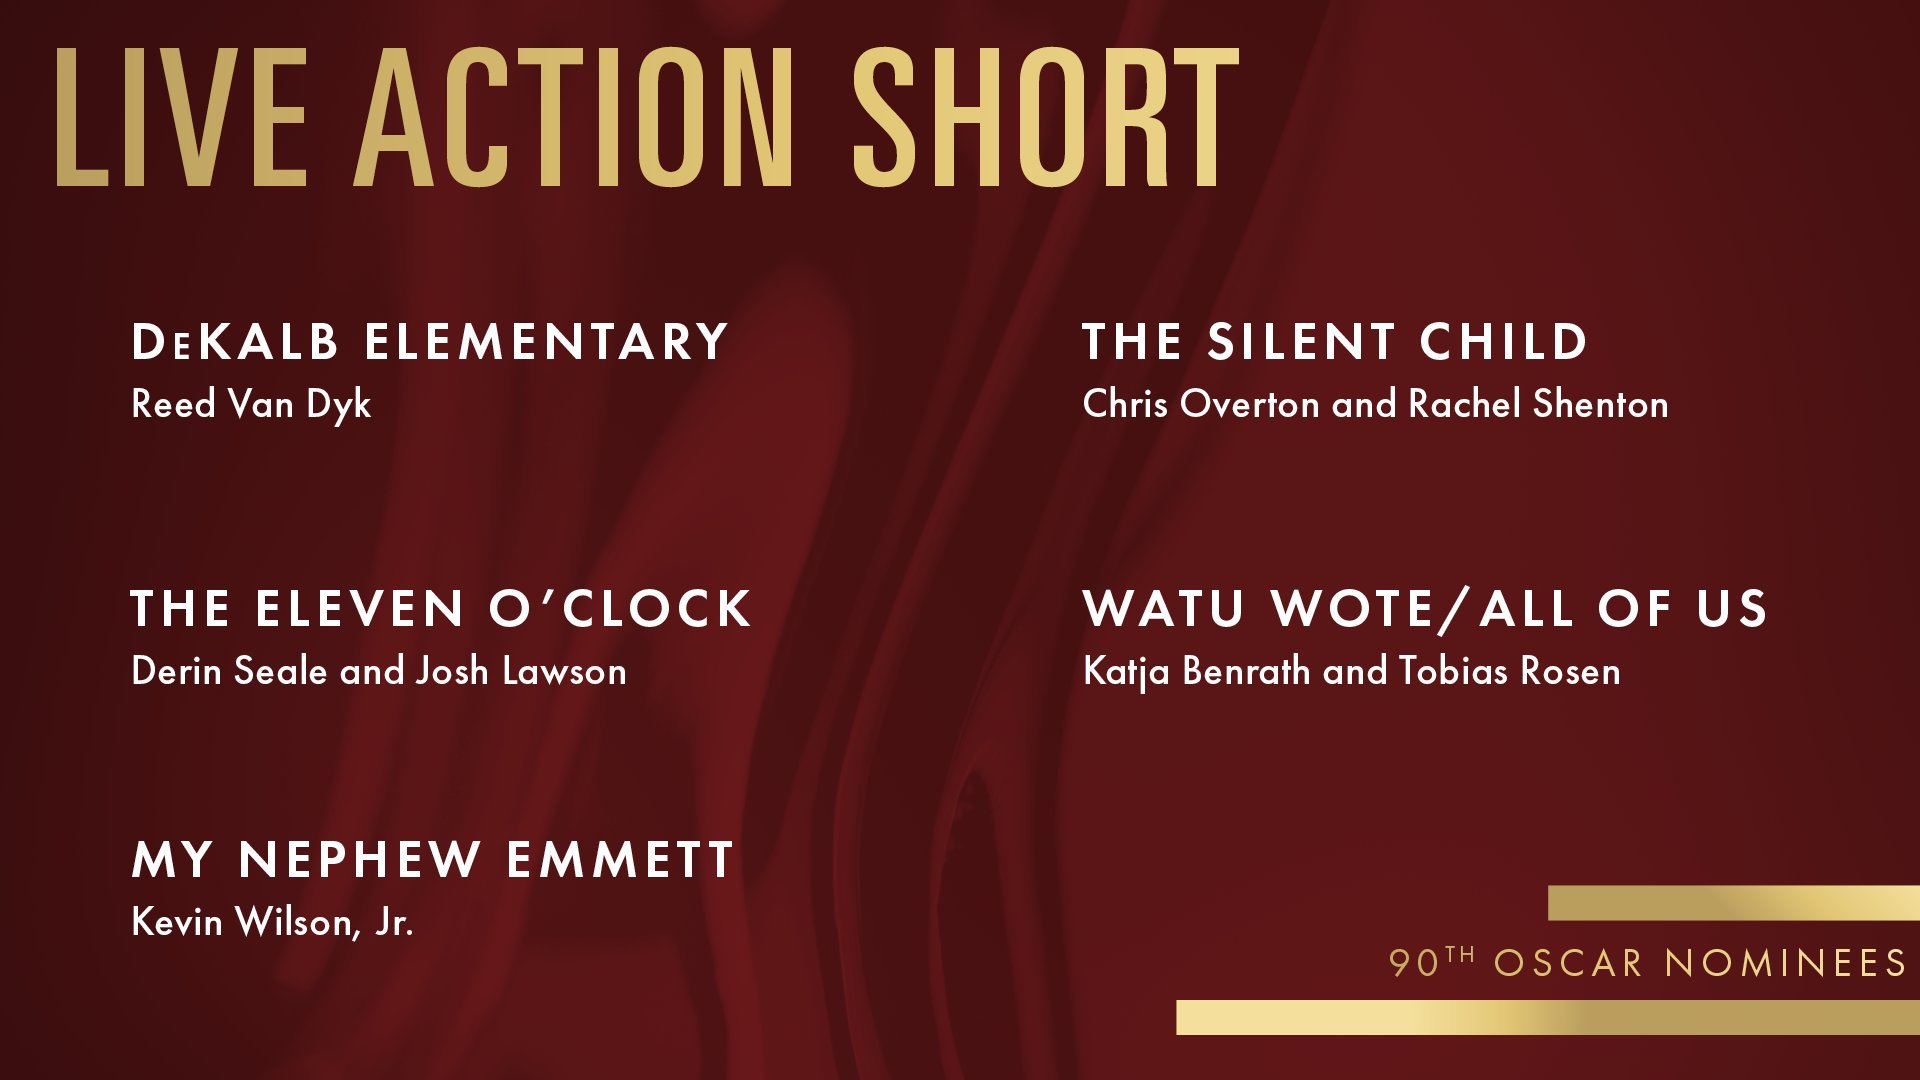 the silent child oscars nomination